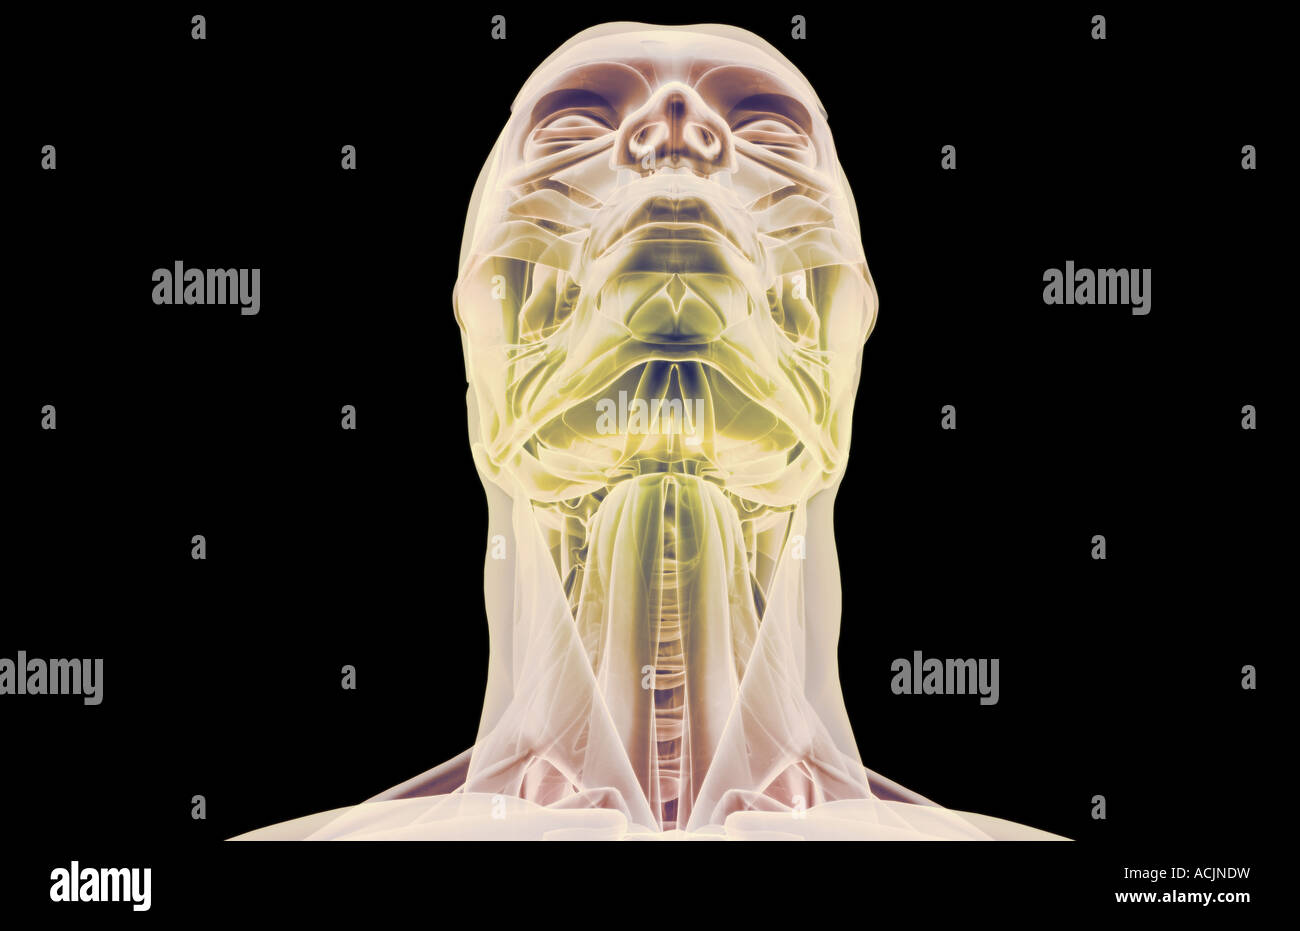 Sternohyoid Stockfotos & Sternohyoid Bilder - Alamy